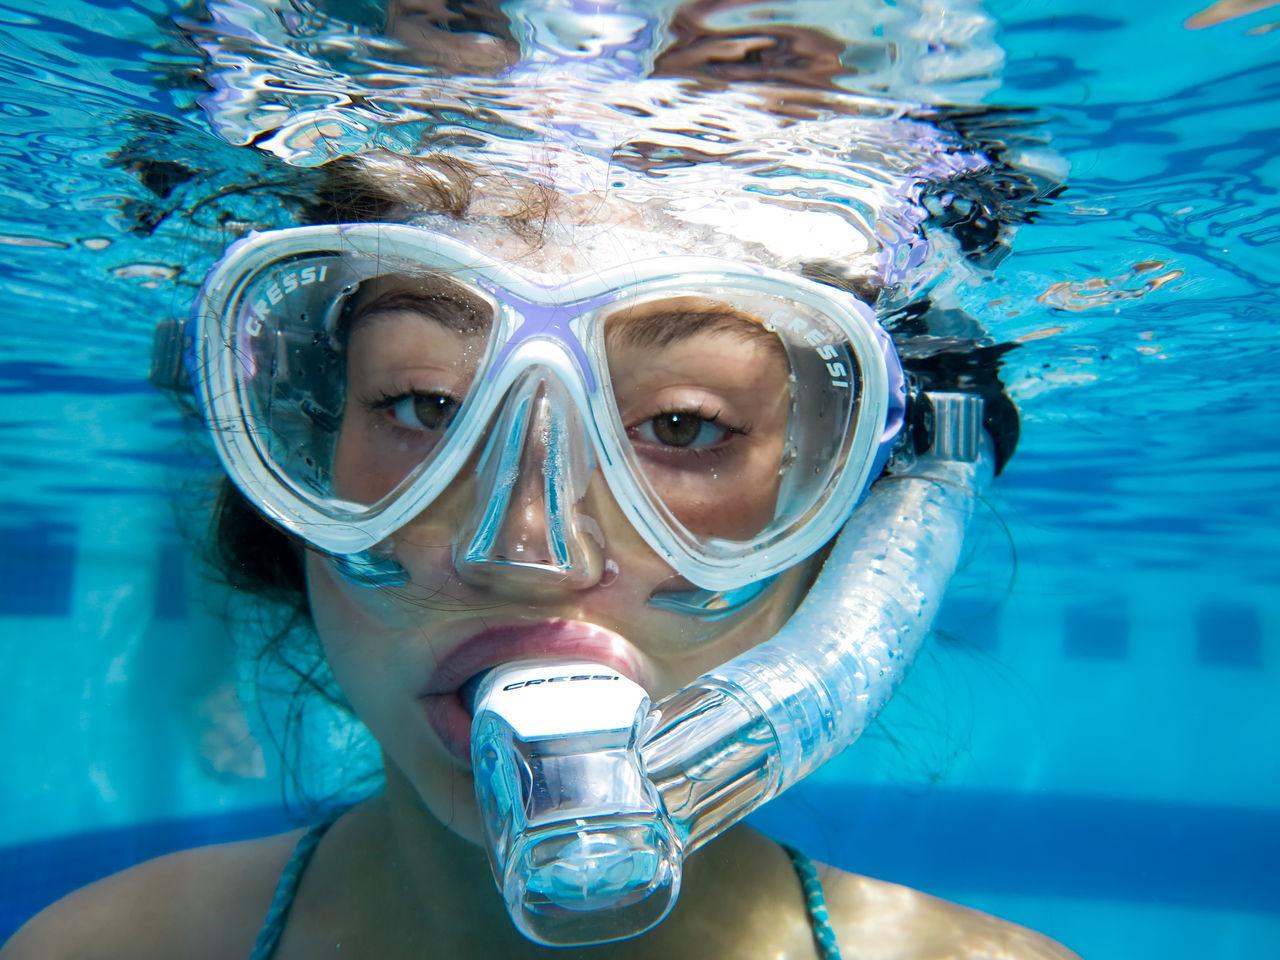 swimming pool, water, swimming goggles, leisure activity, underwater, looking at camera, swimming, front view, real people, one person, portrait, close-up, headshot, outdoors, lifestyles, blue, snorkeling, day, scuba diving, nature, young adult, undersea, people